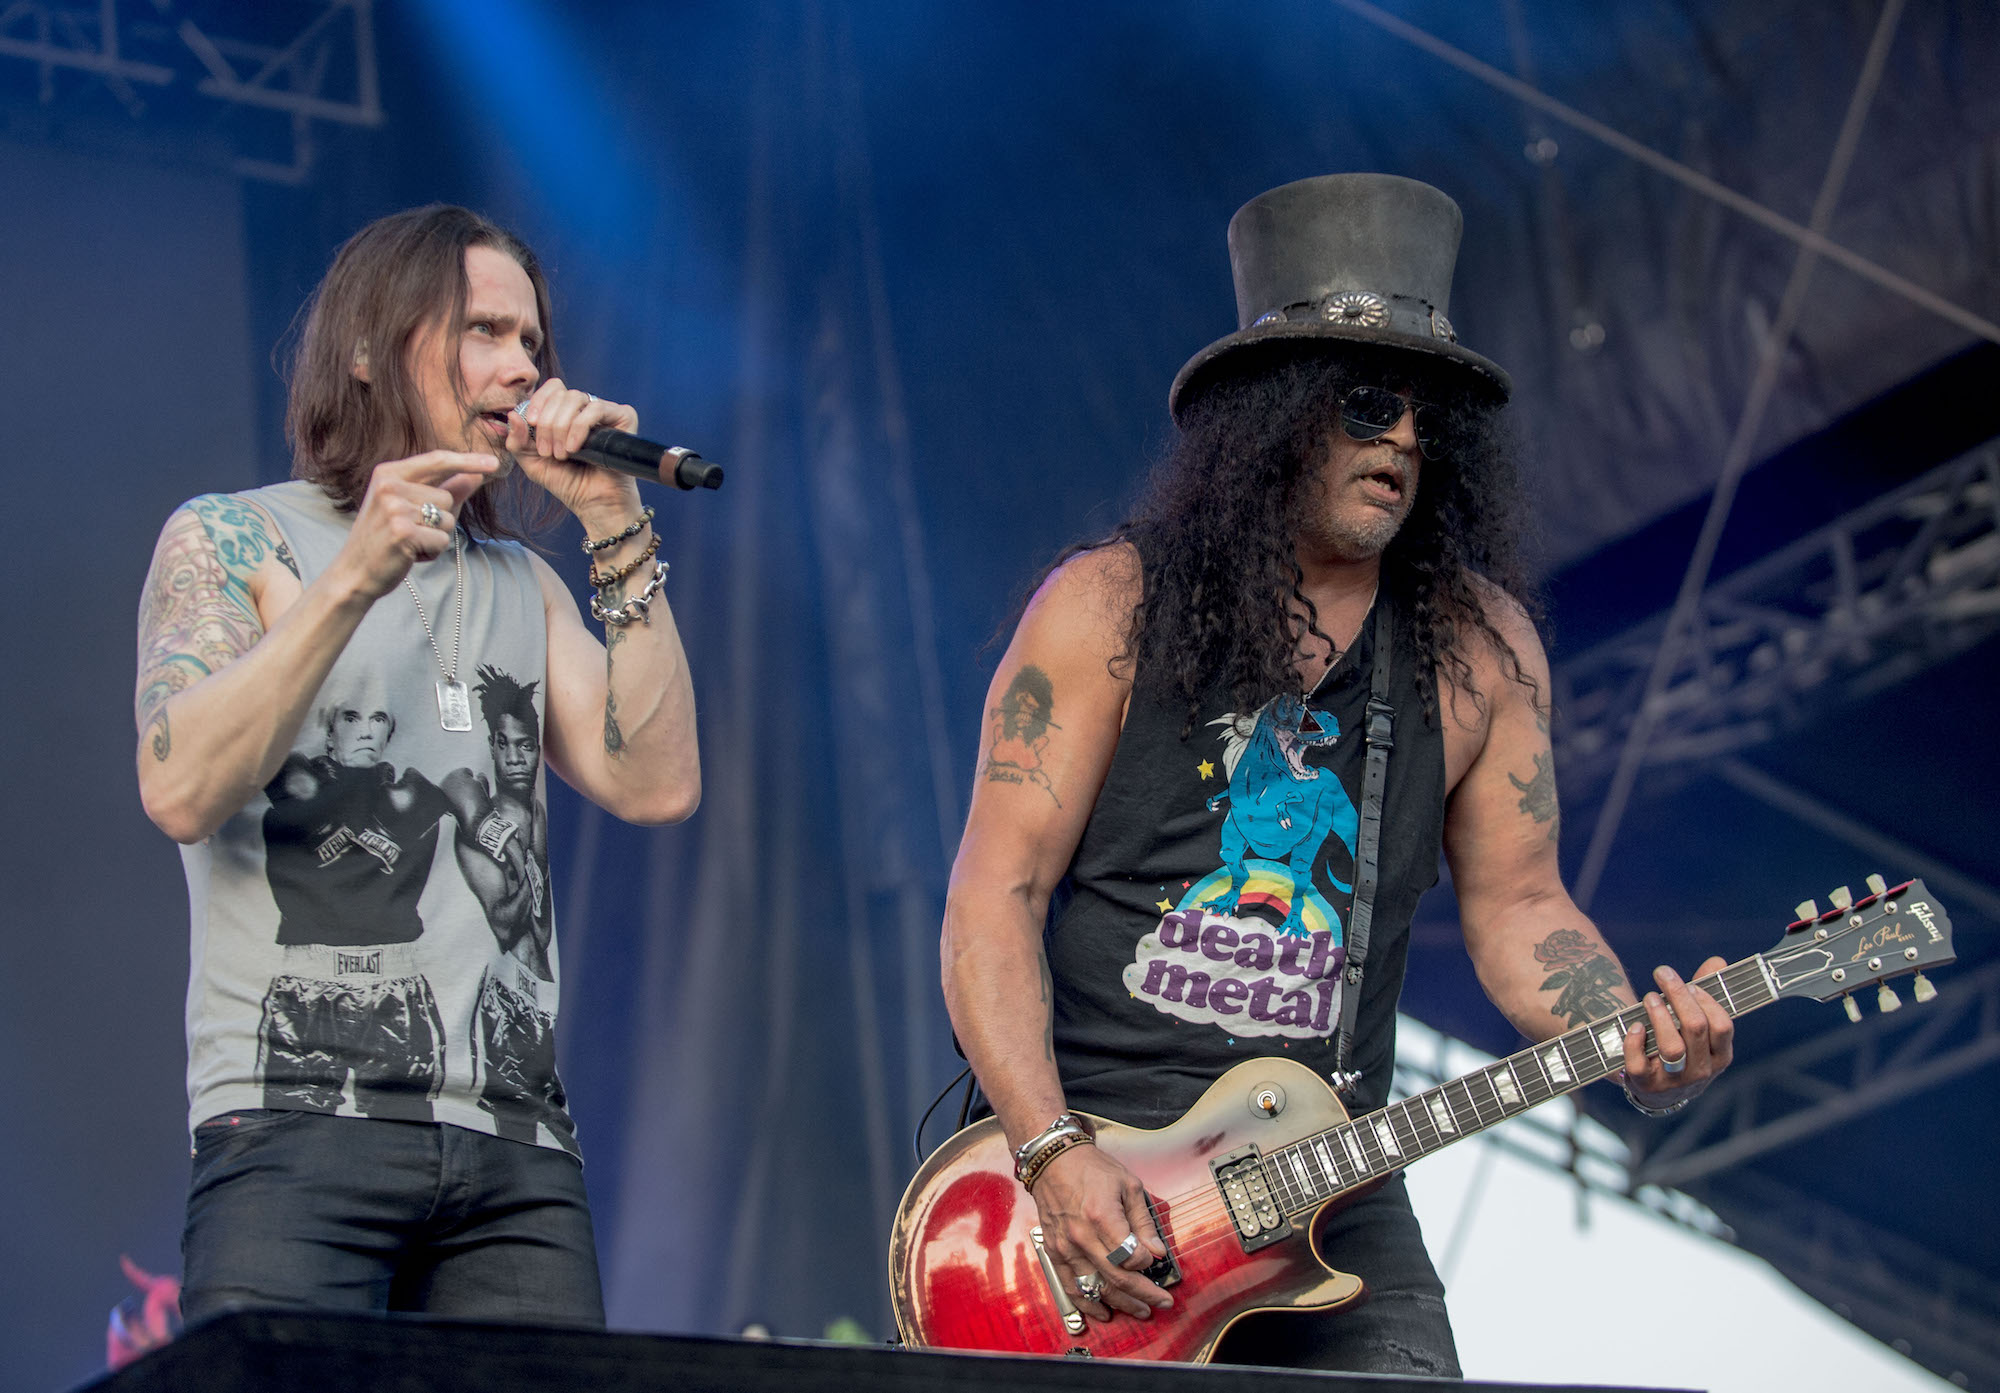 SLASH Featuring Myles Kennedy And The Conspirators Live at Lollapalooza [GALLERY] 7